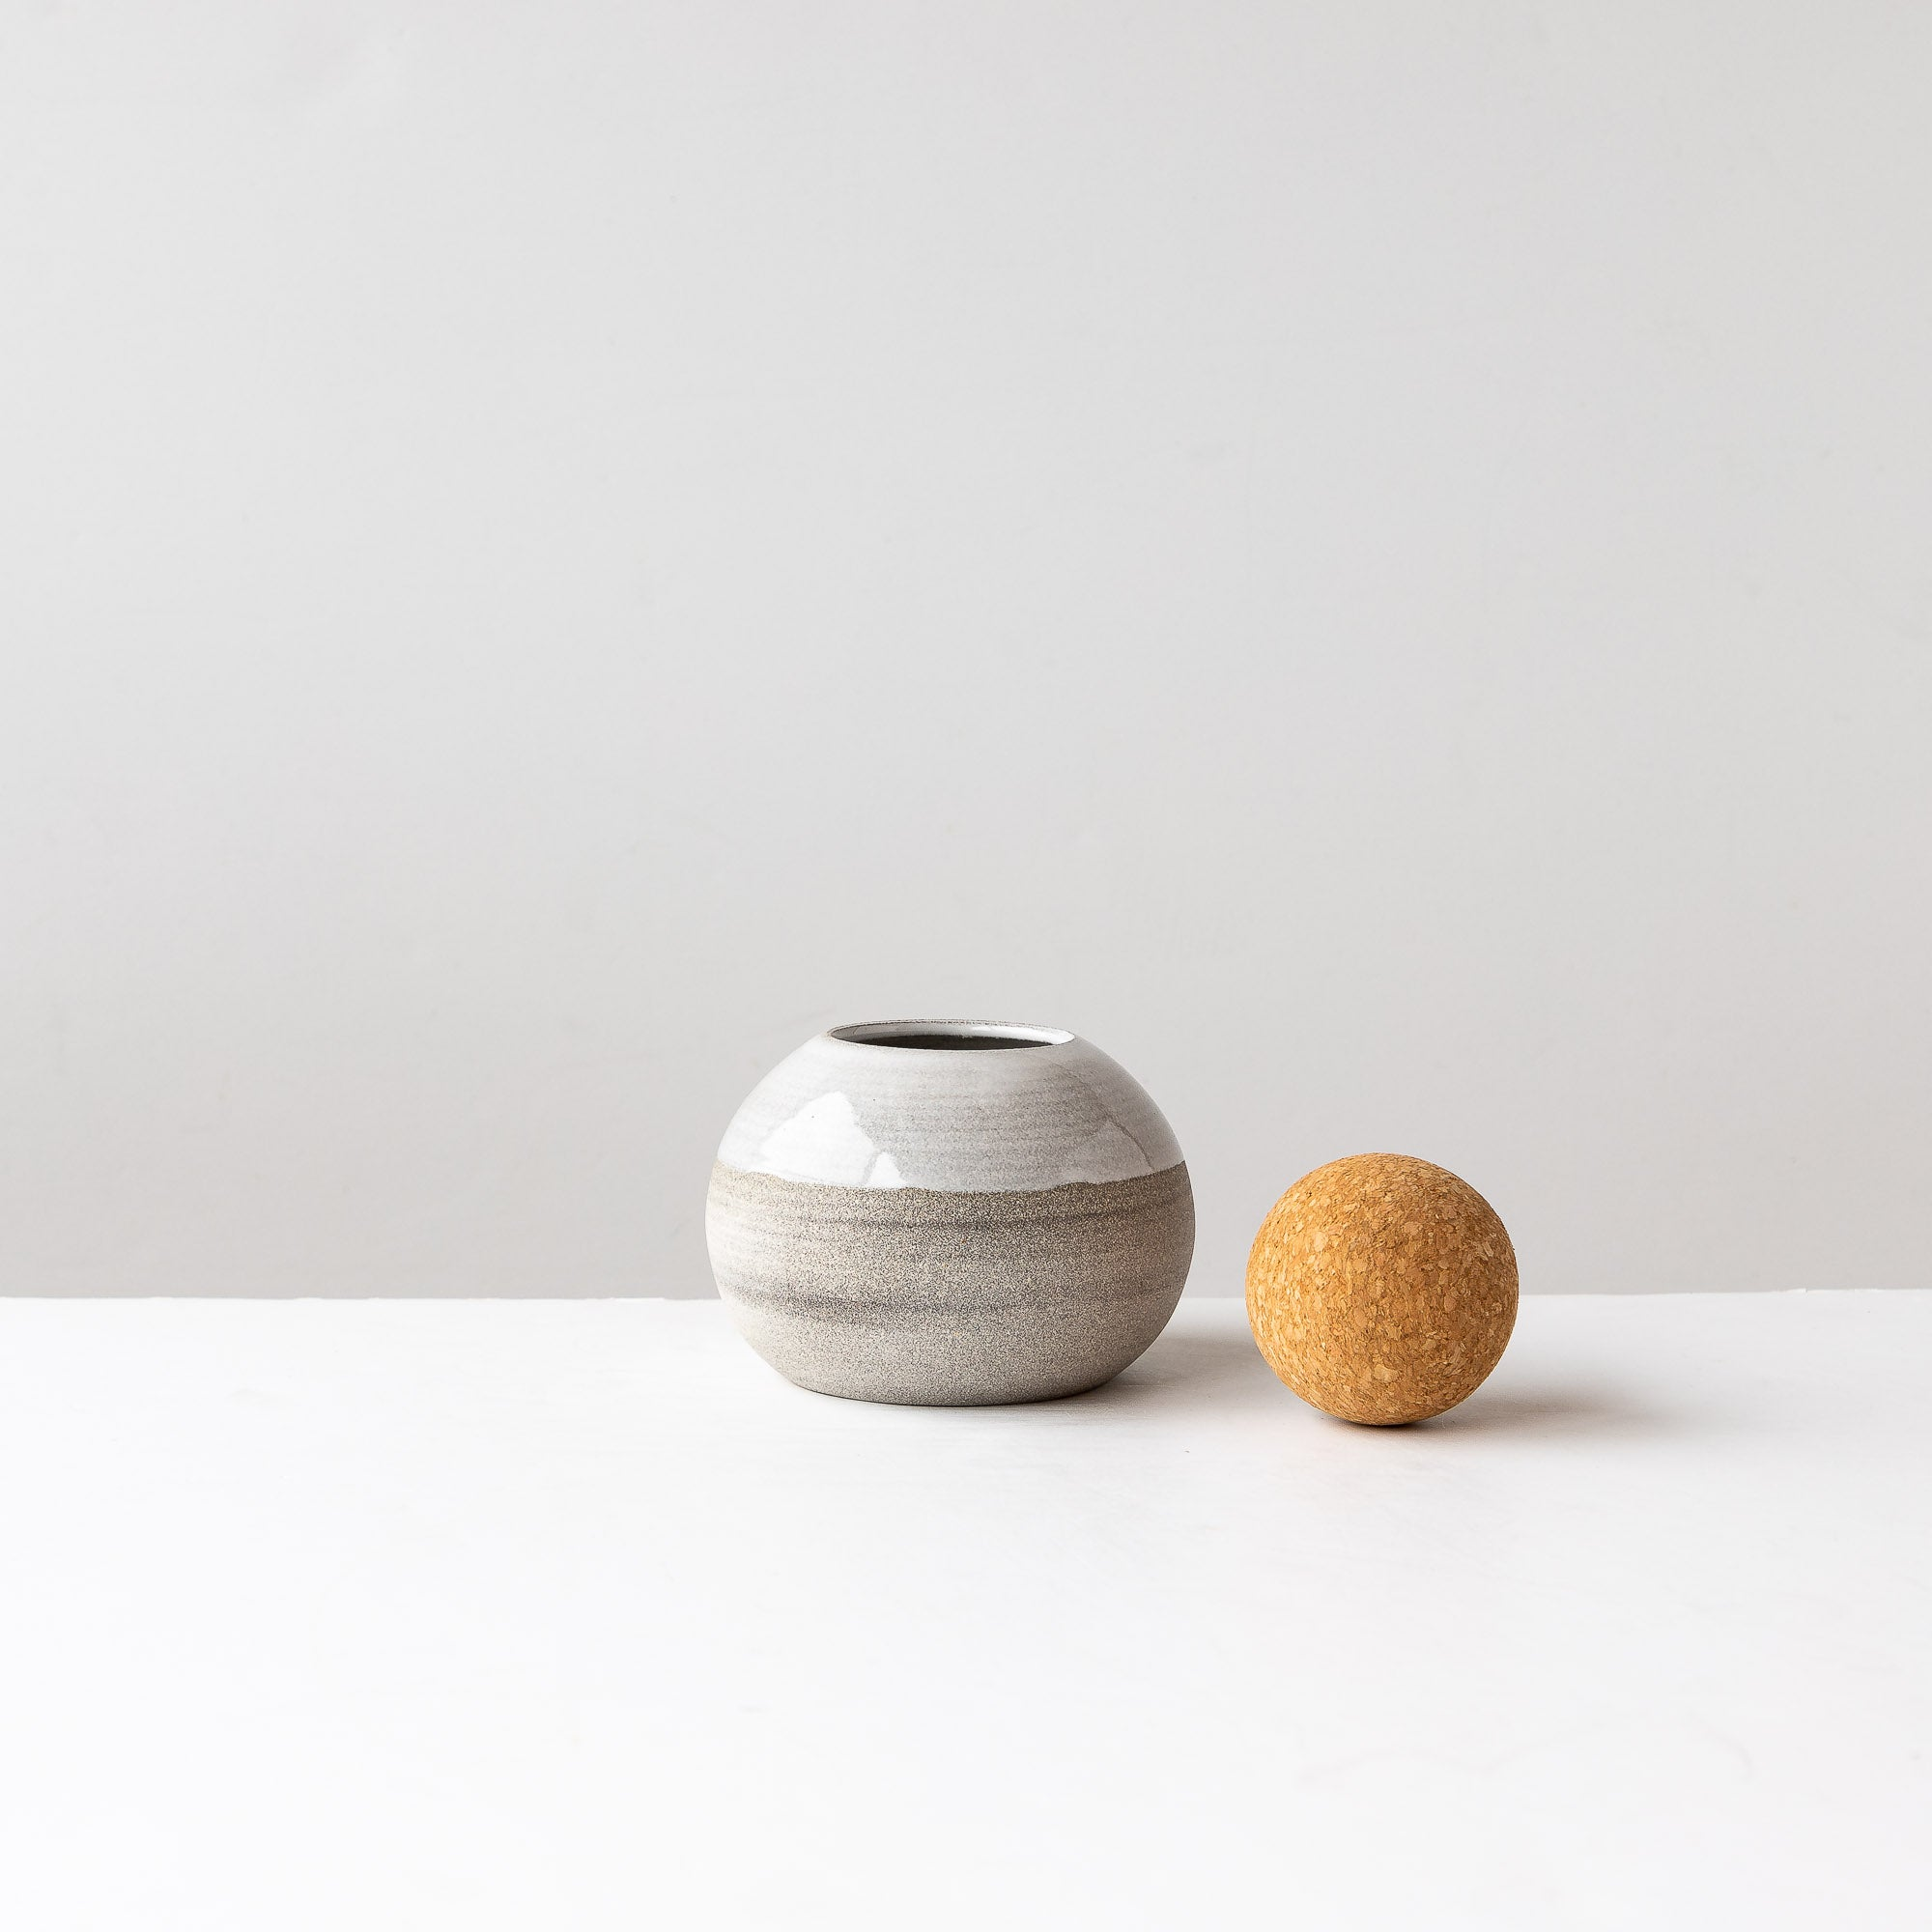 Small stoneware jar with round cork lid, handmade. - Sold by Chic & Basta